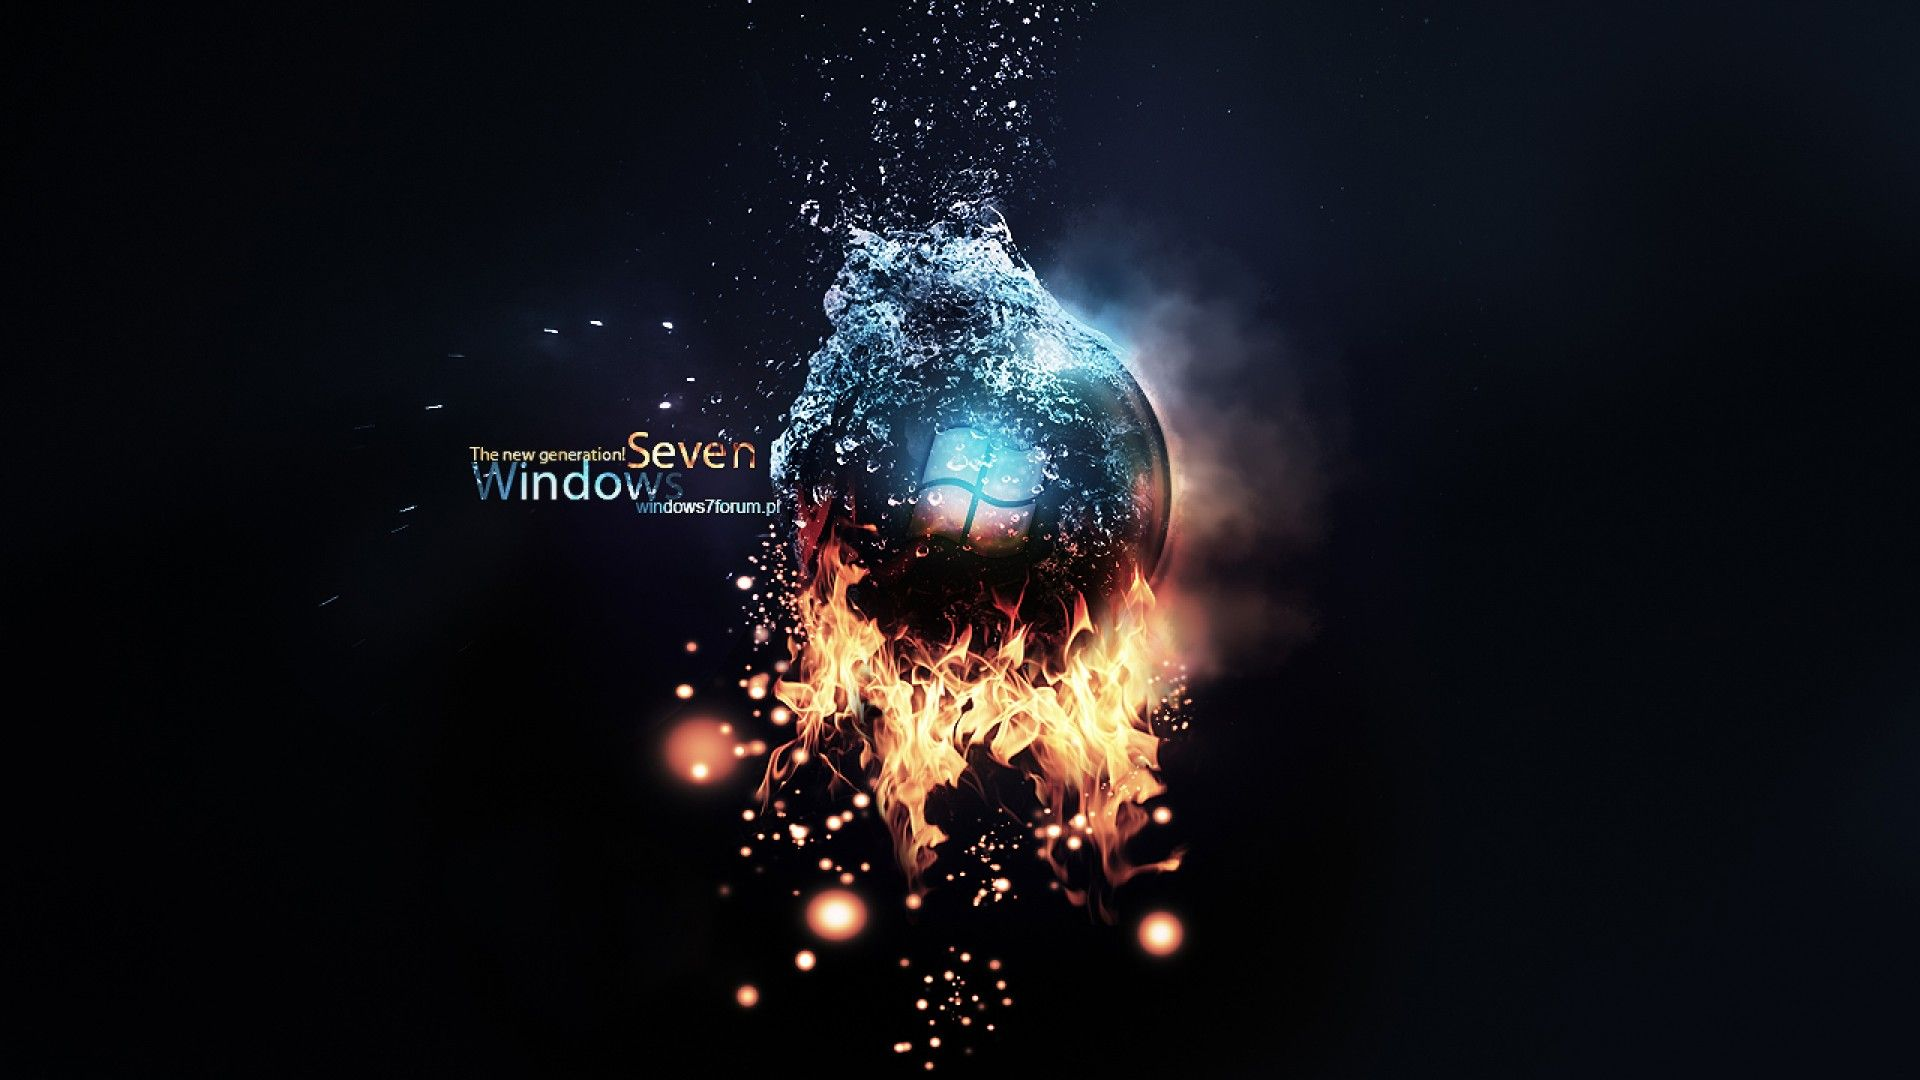 HD Wallpapers For Windows 7 Group (90+)